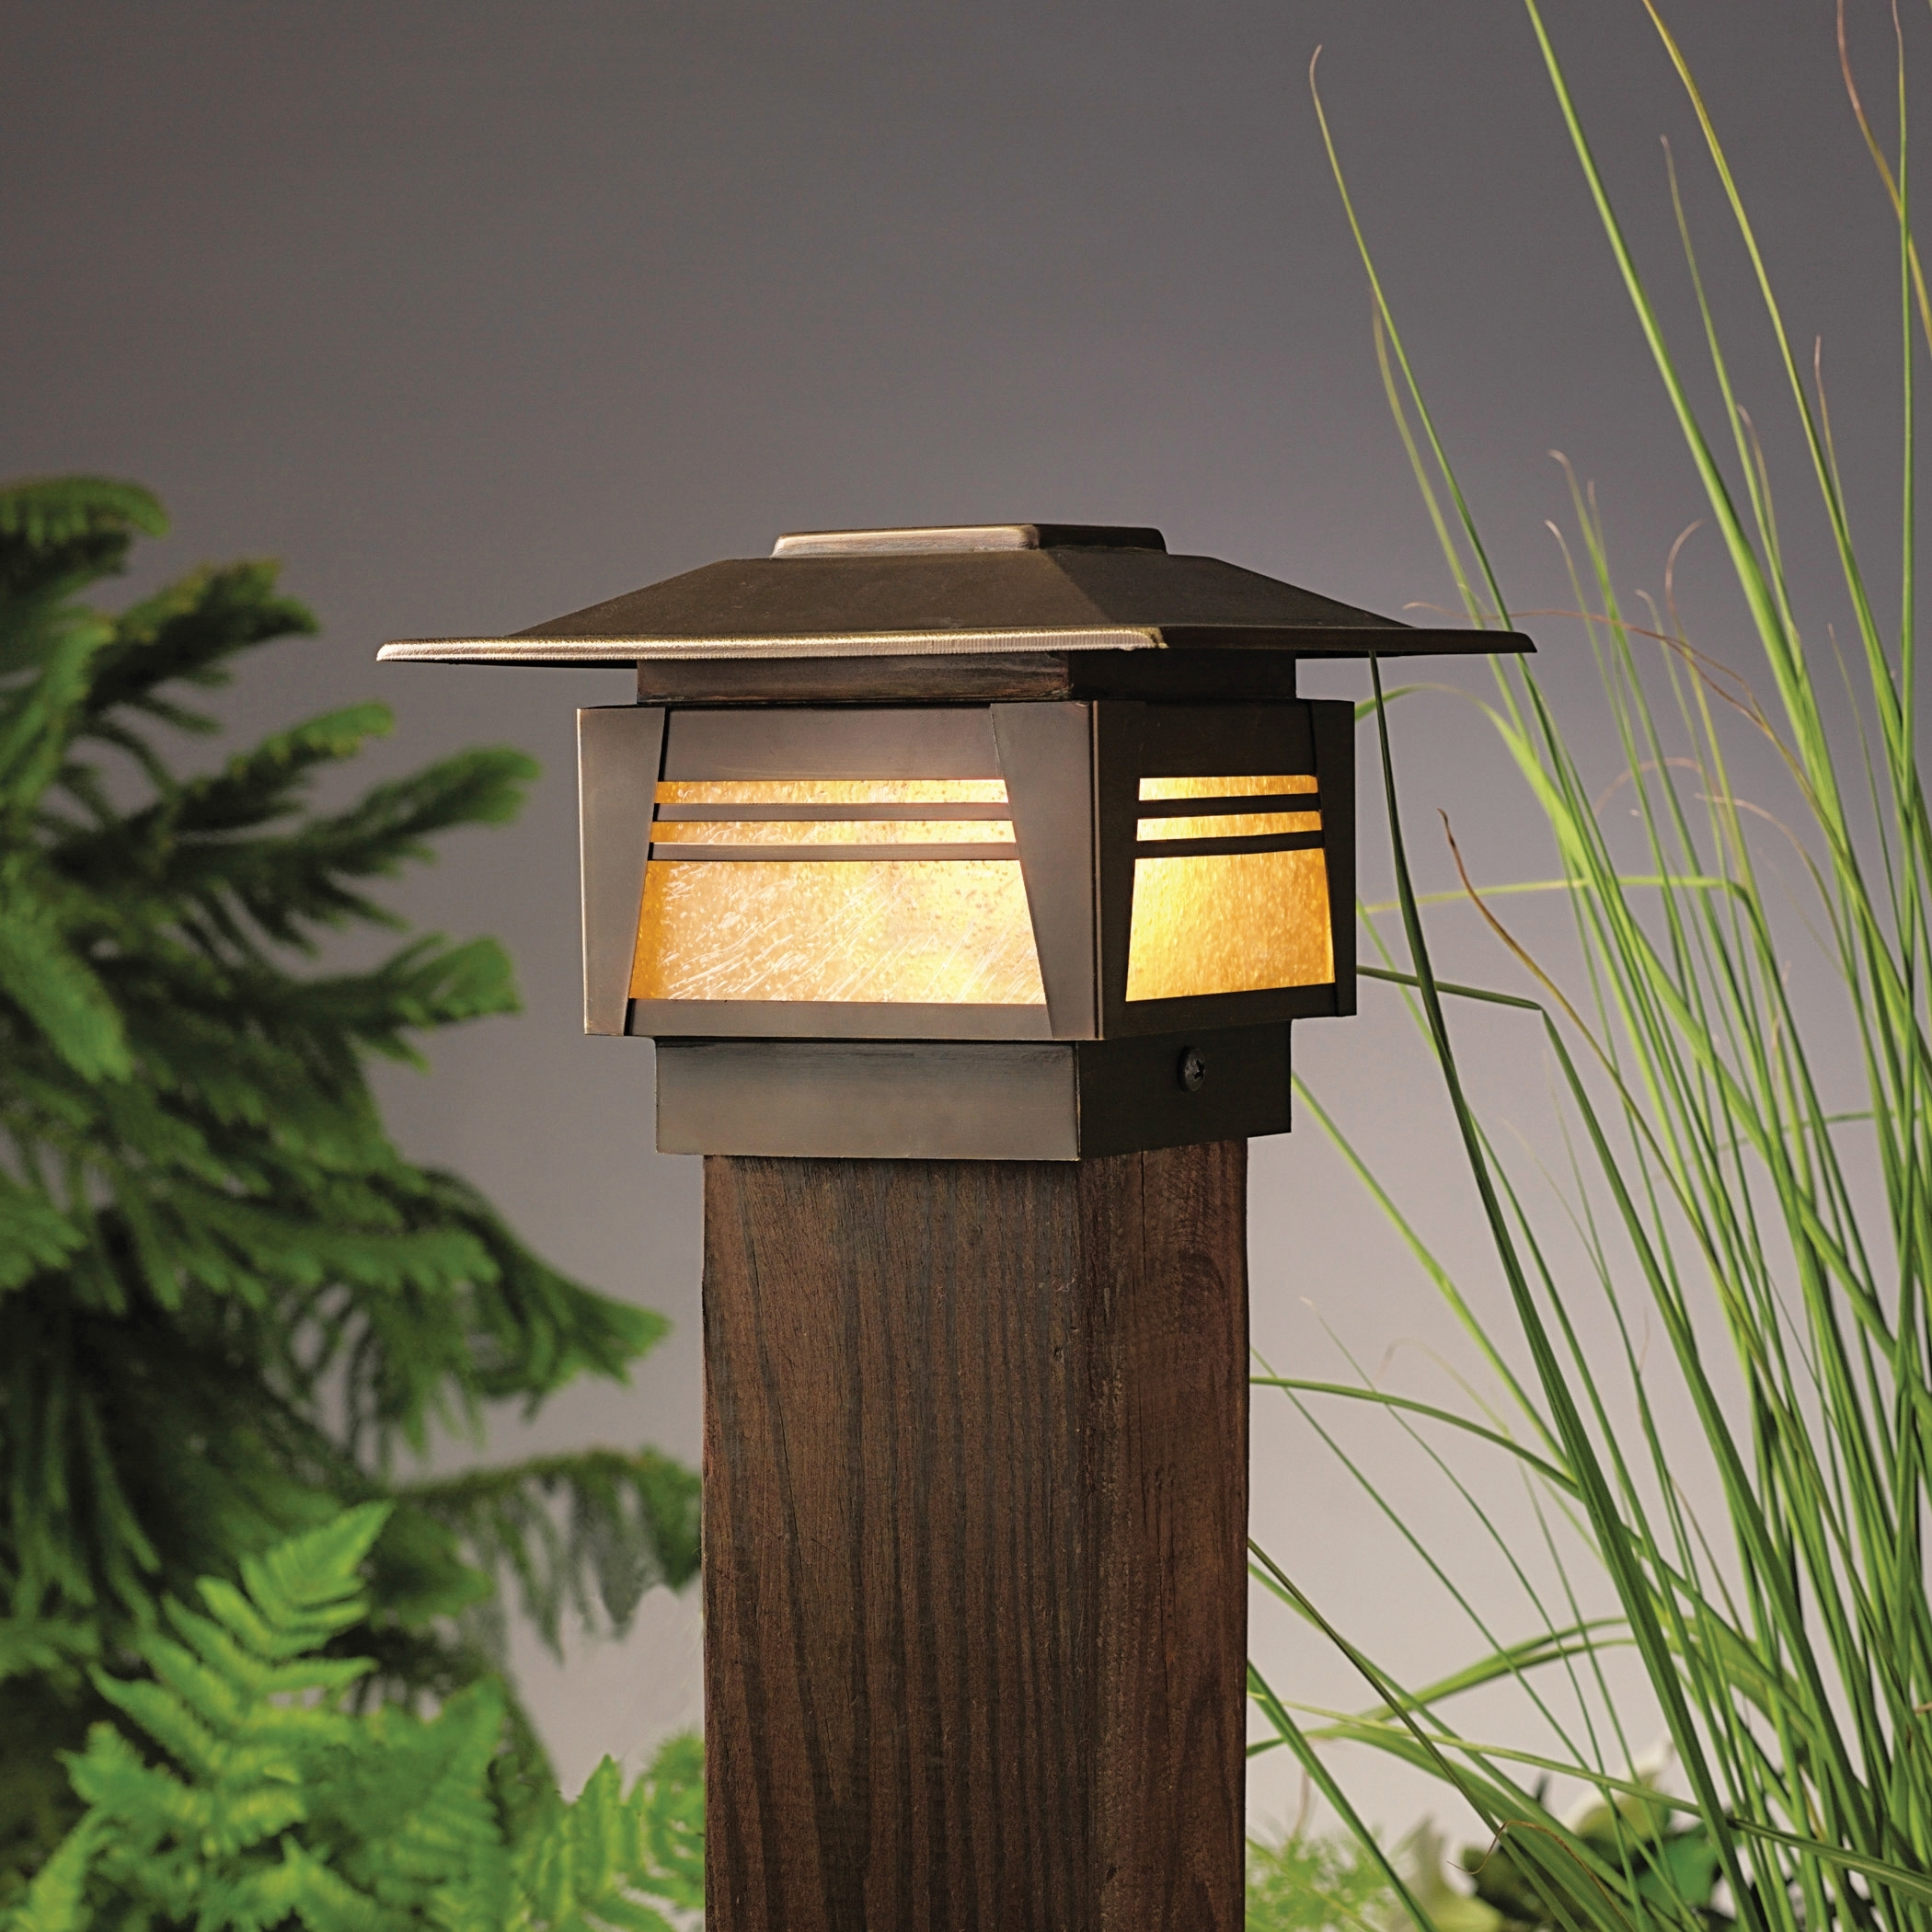 Outdoor Lighting St Louis | Green Turf Pertaining To Wayfair Landscape Lighting For Mini Garden (View 4 of 15)